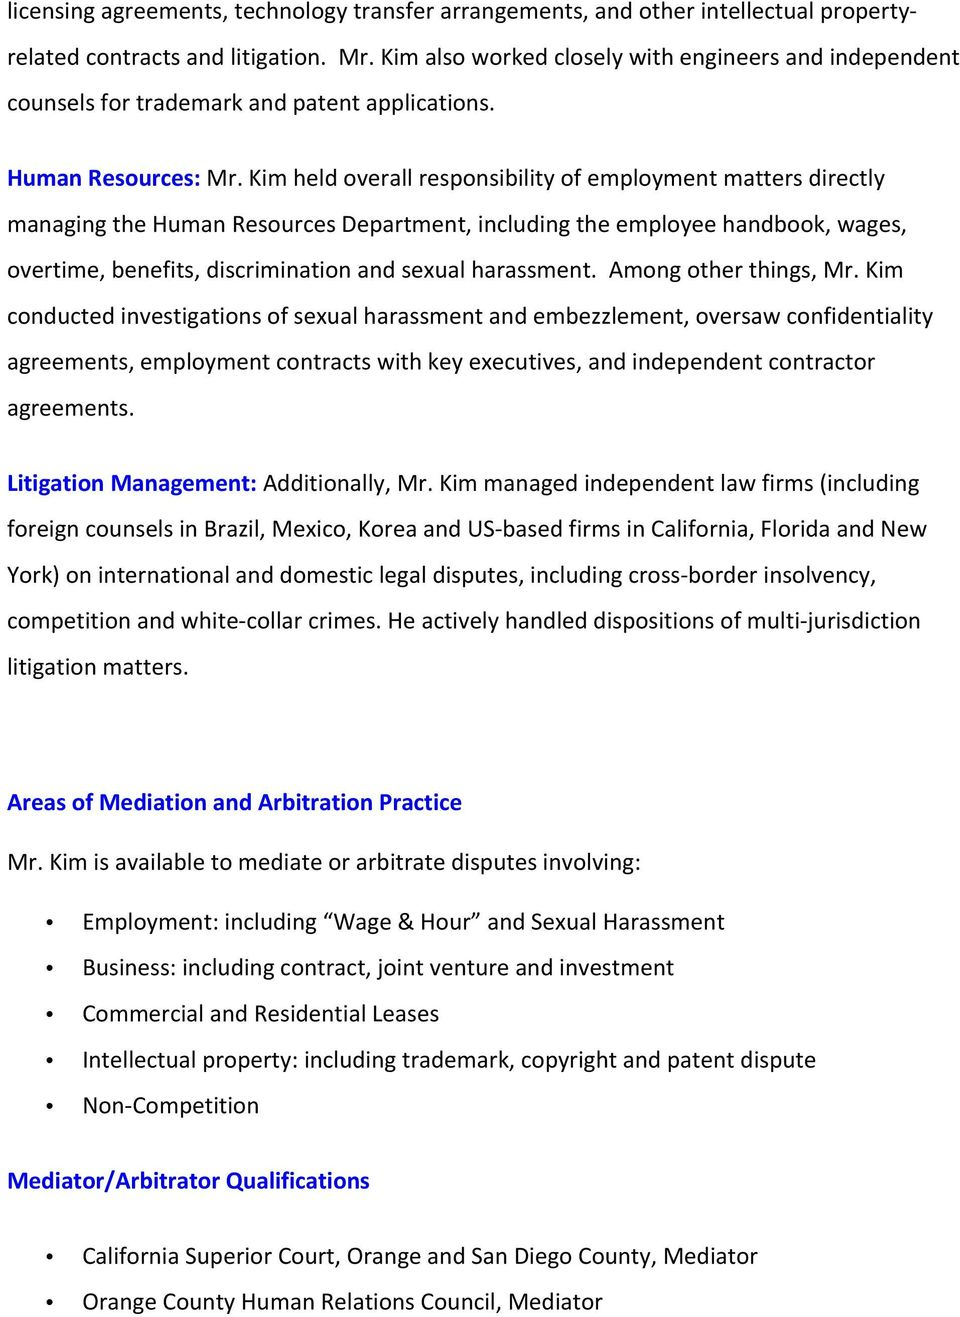 Kim held overall responsibility of employment matters directly managing the Human Resources Department, including the employee handbook, wages, overtime, benefits, discrimination and sexual